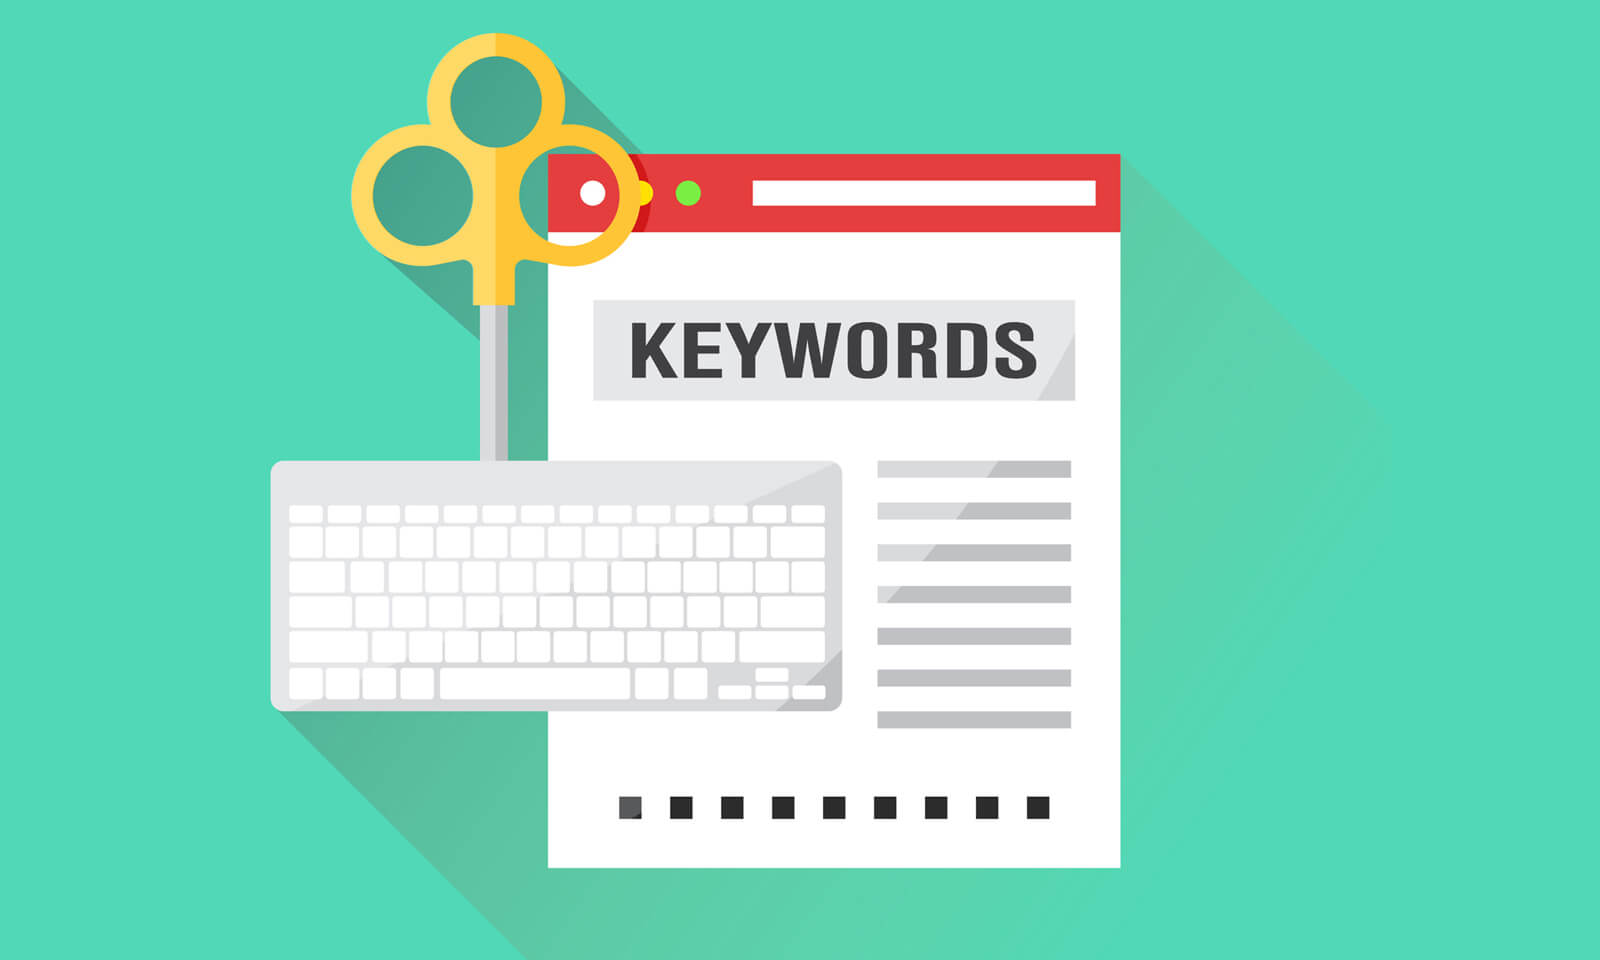 6 Tips for Choosing the Right Keywords to Use